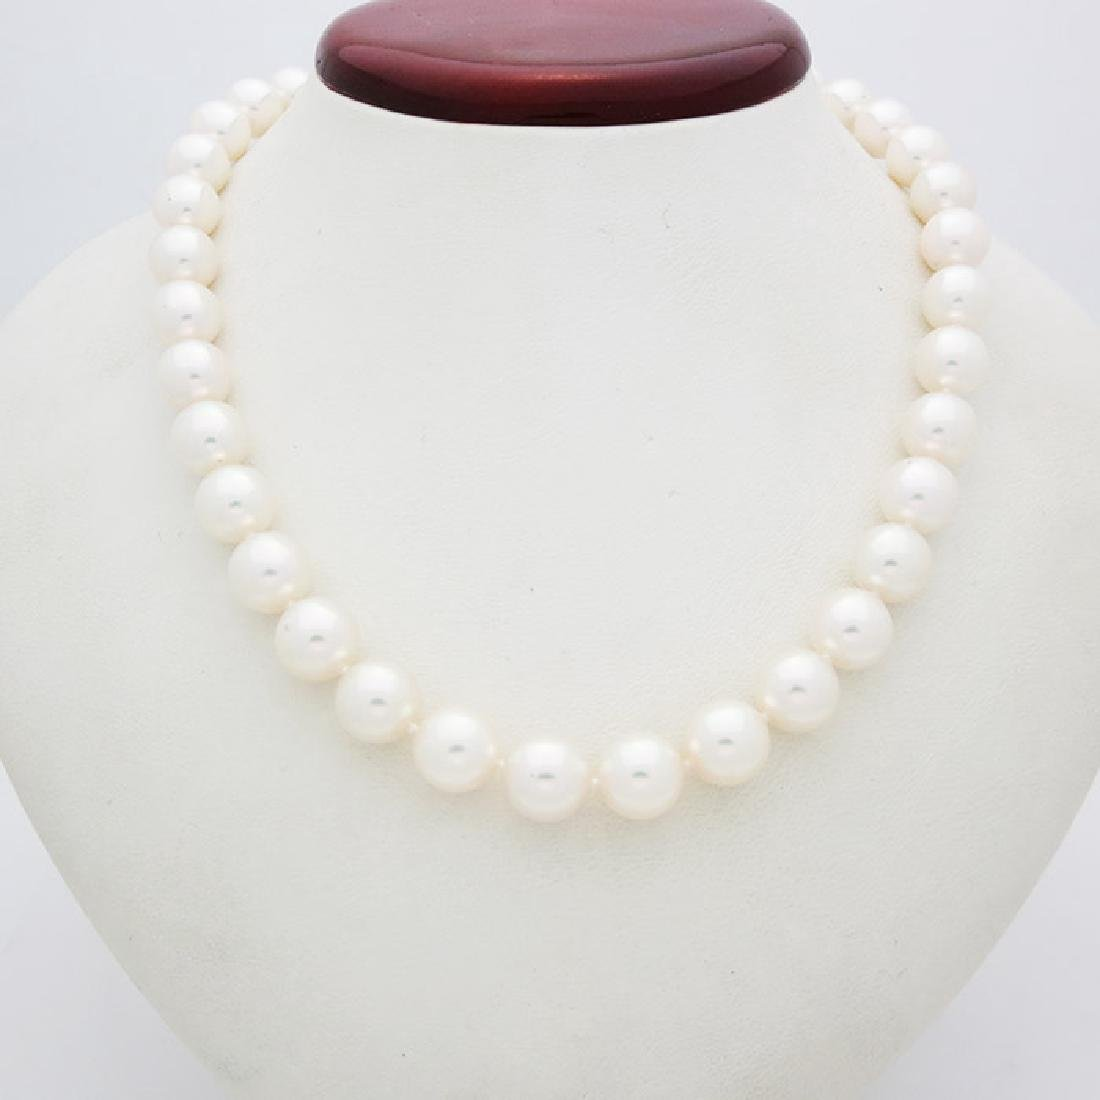 Mikimoto Pearl Necklace 18kGold & Blue Enamel Necklace